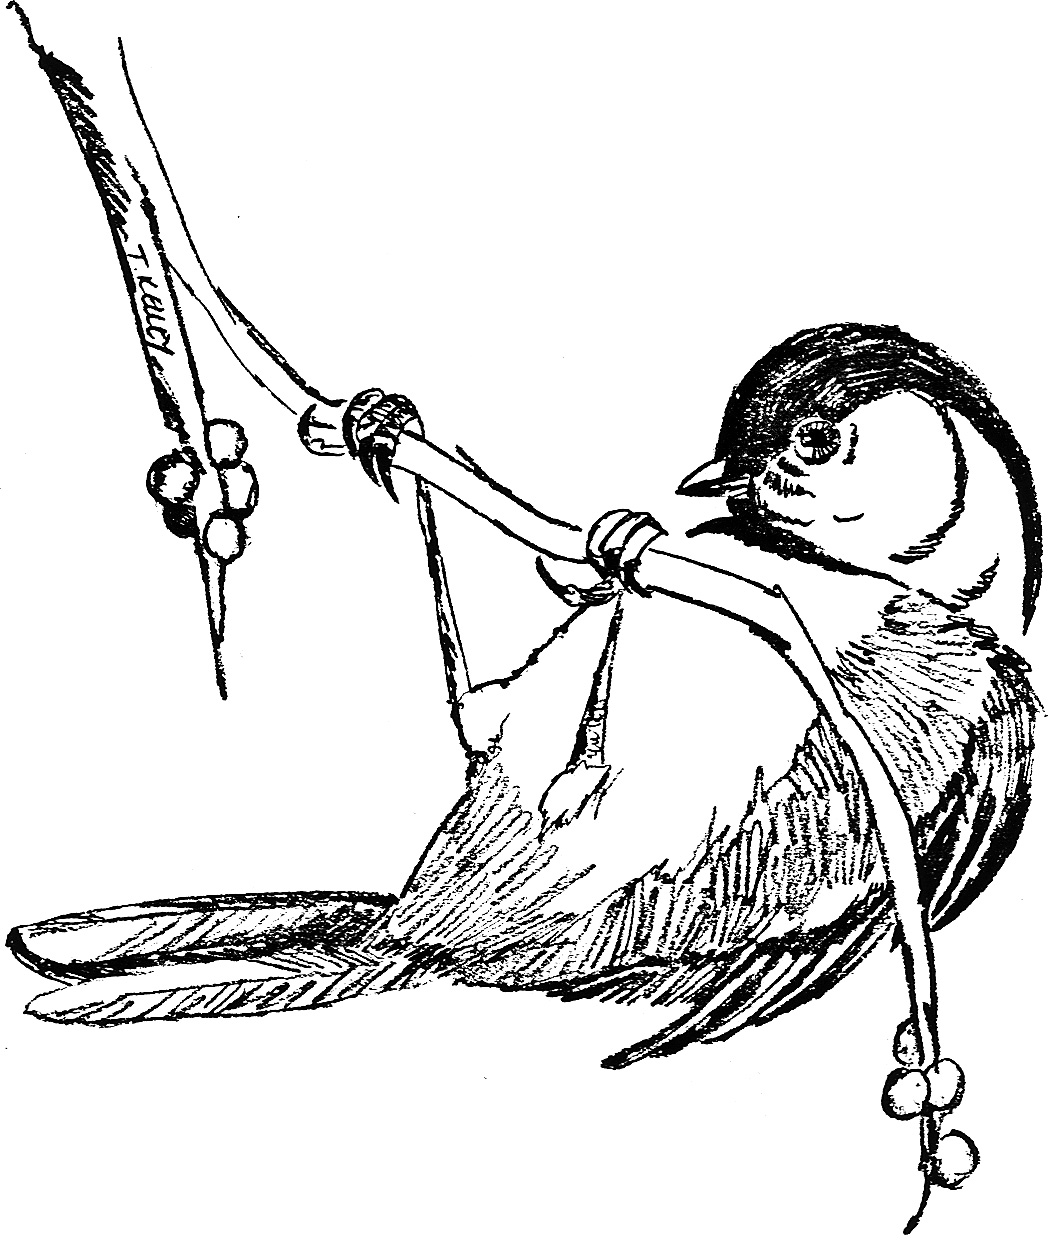 chickadee bird coloring pages - photo#28